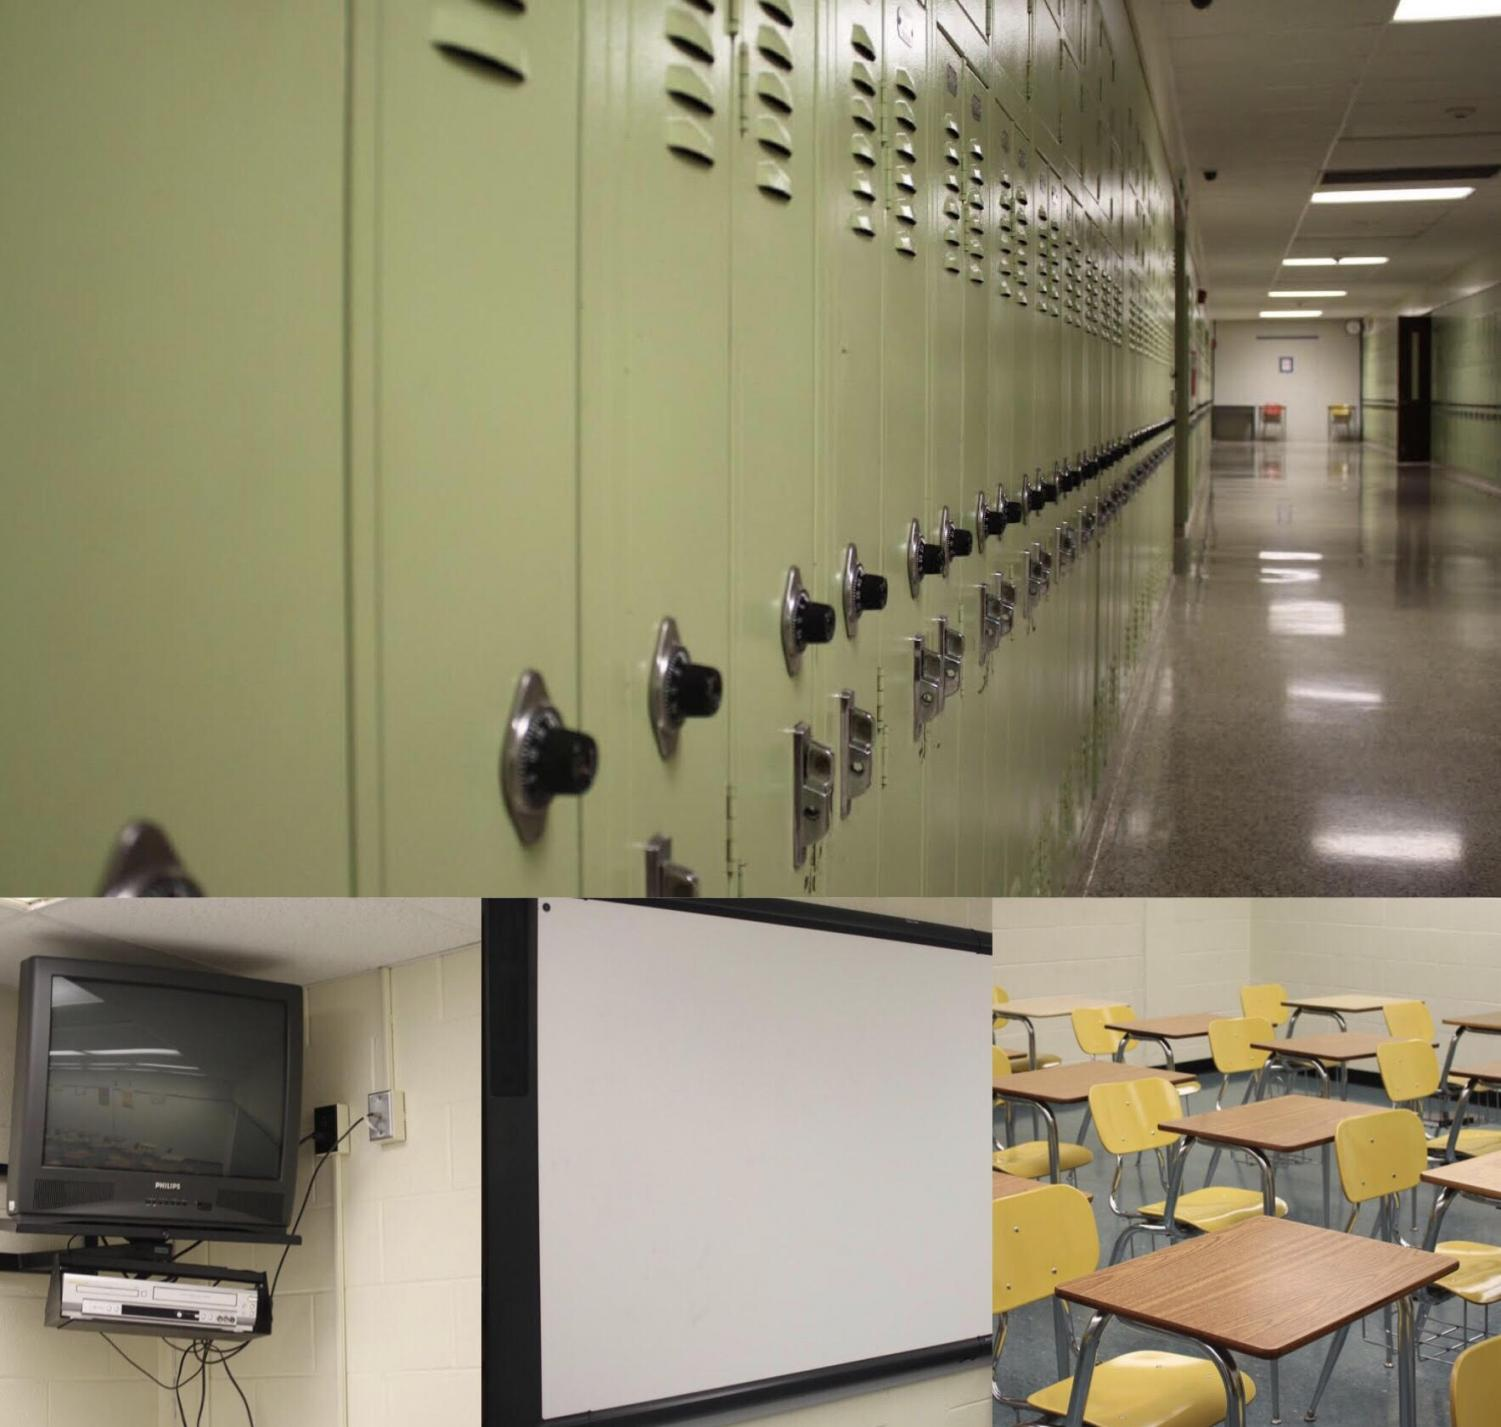 Old! These four pictures show how some aspects of the school are outdated. Lockers, TVs, smart boards and desks are just some of the things that need updated during the renovation.